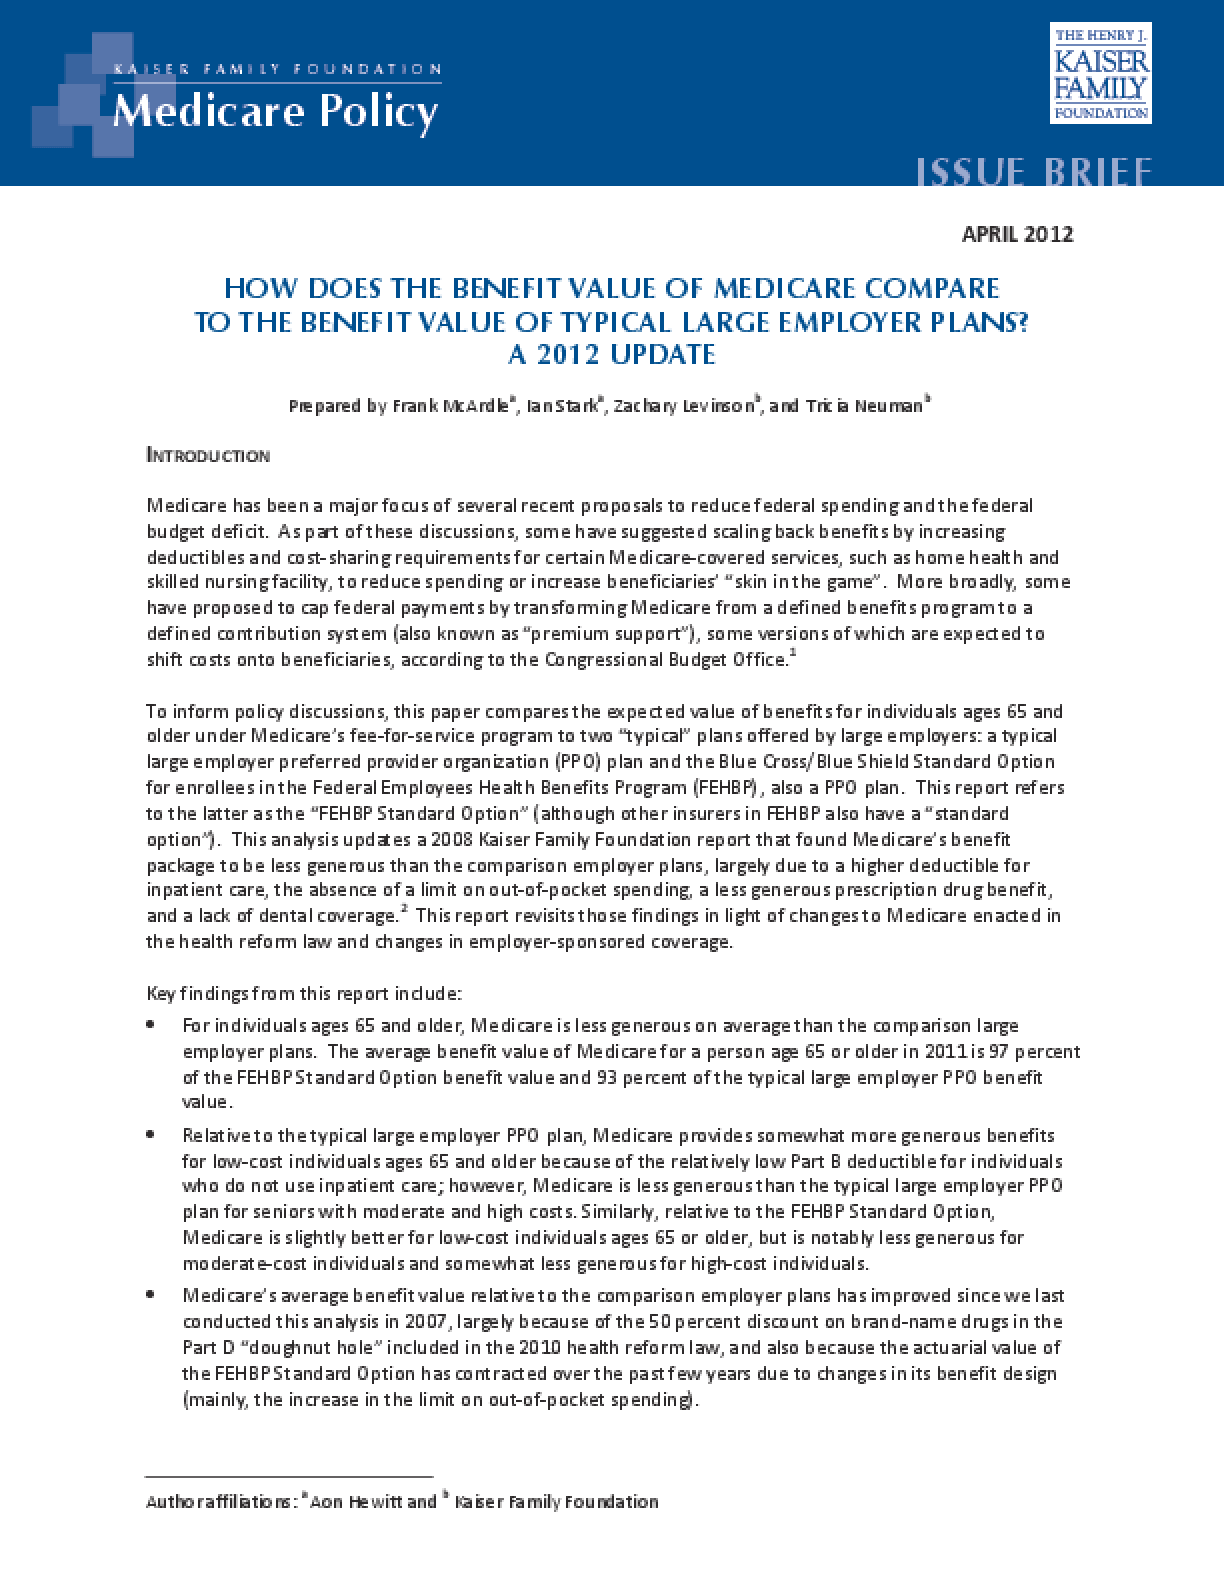 How Does the Benefit Value of Medicare Compare to the Benefit Value of Typical Large Employer Plans?: A 2012 Update